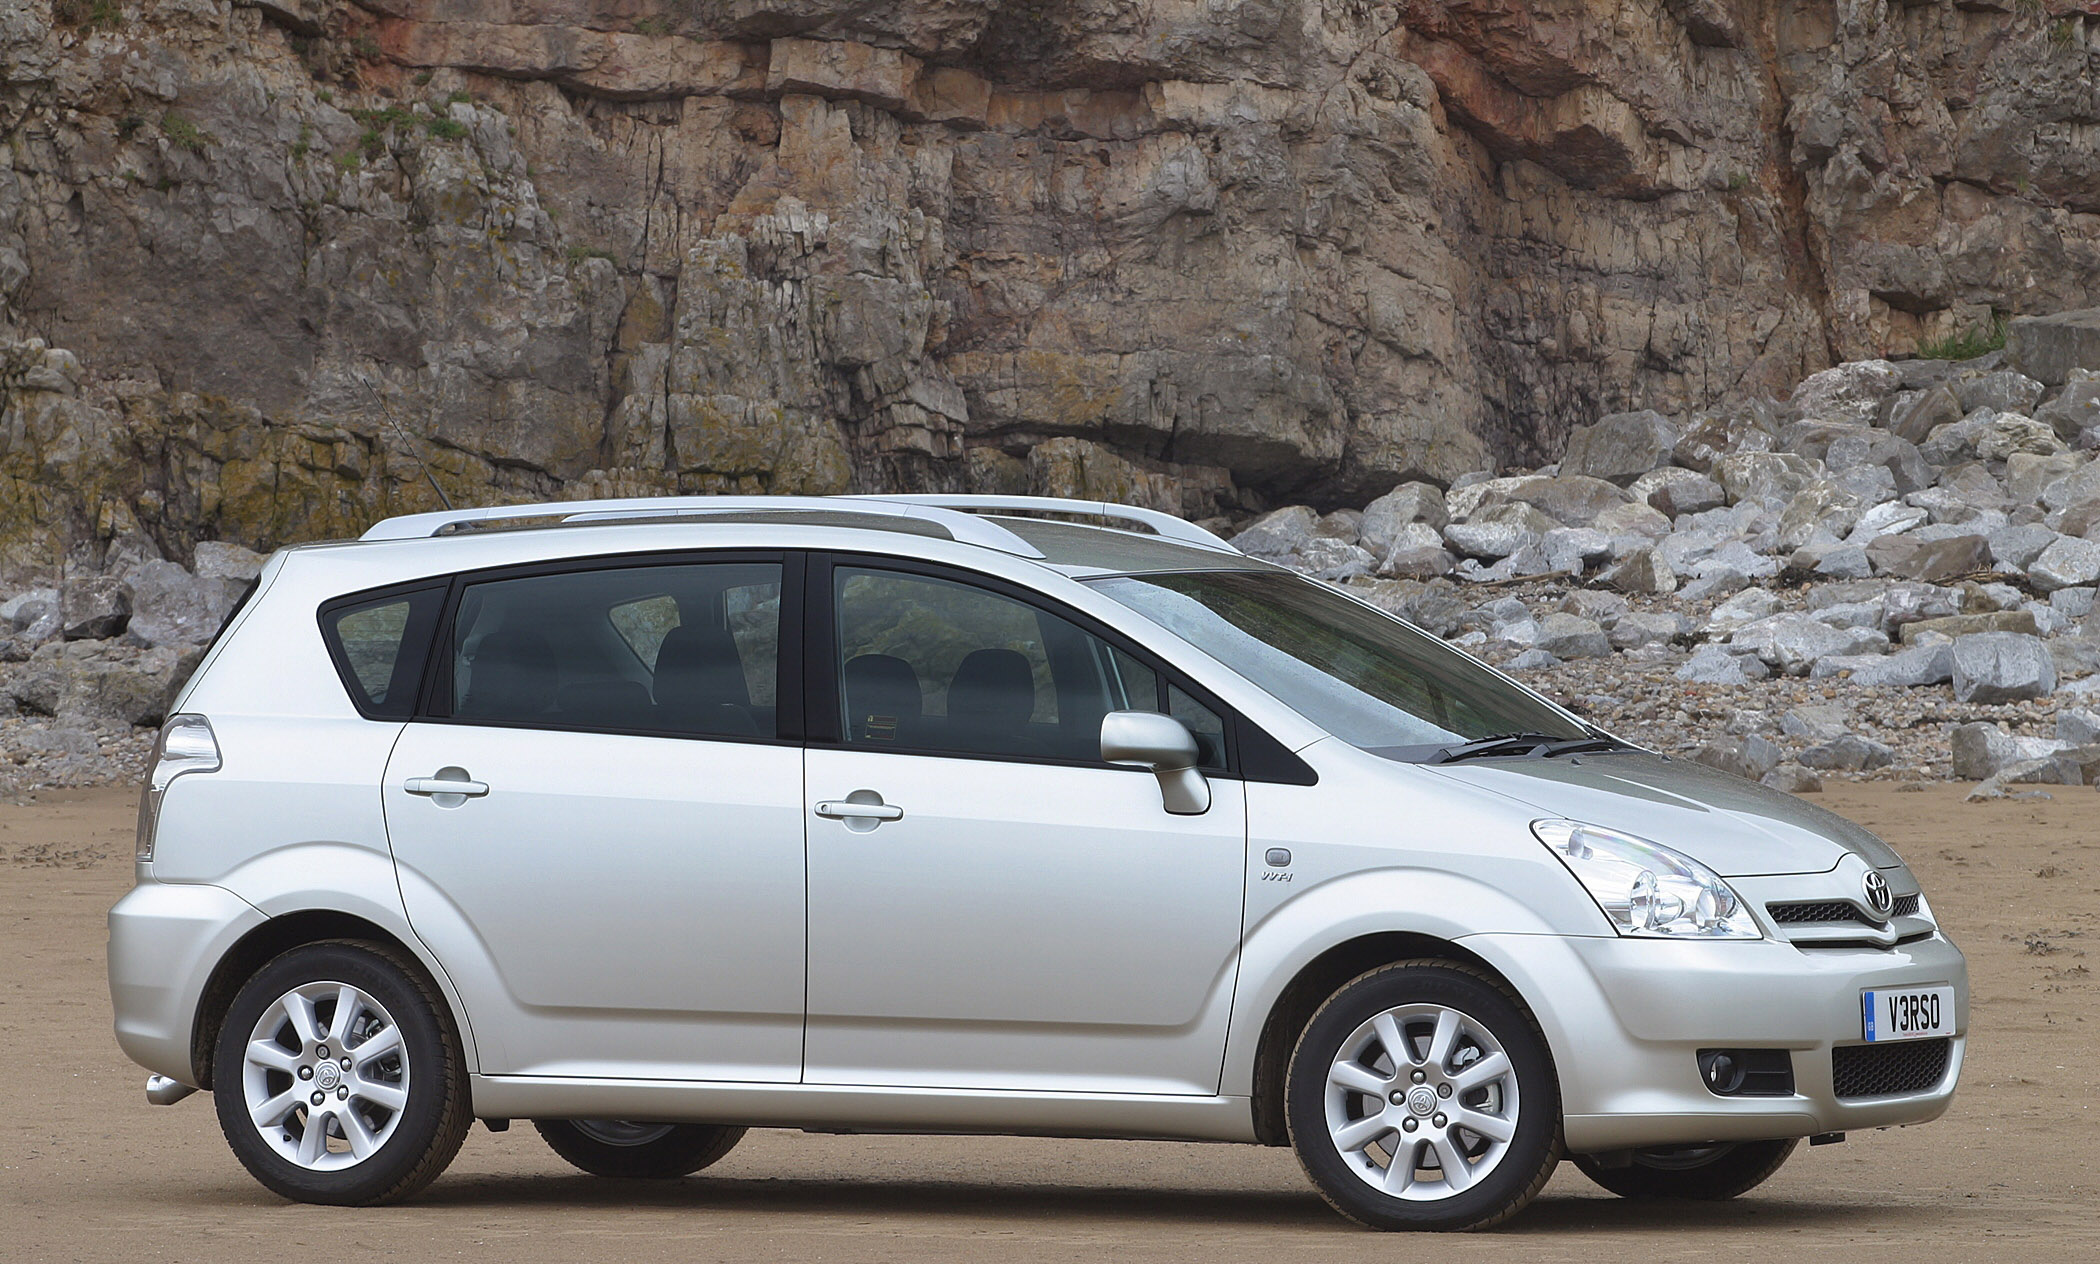 2008 Toyota Corolla Verso - Fresh face & 2.2Diesel with DPF